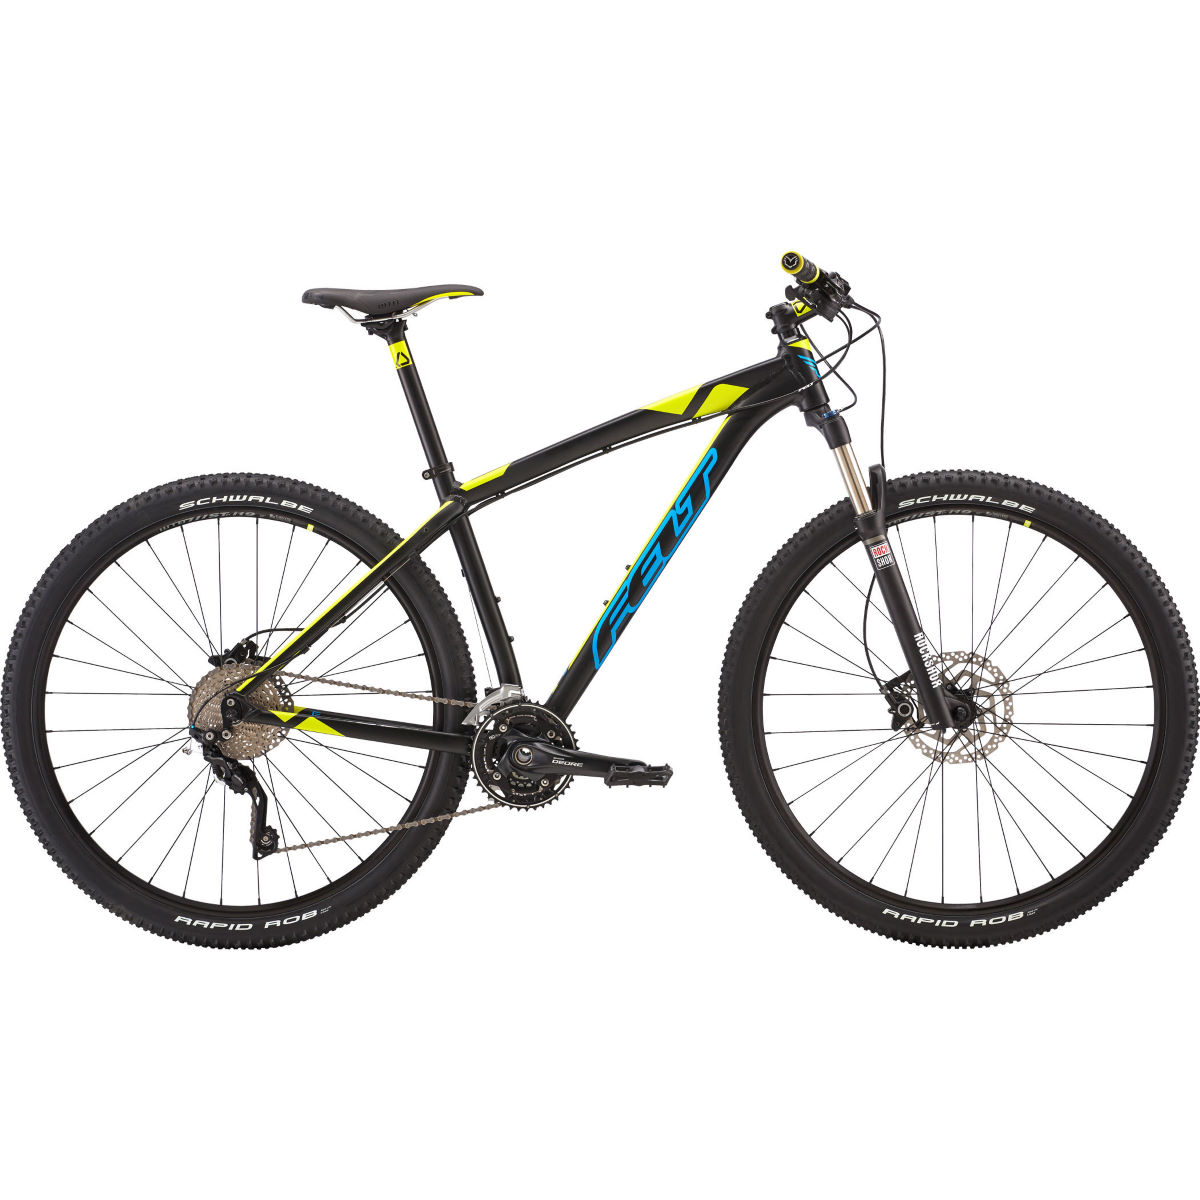 VTT Felt Nine 50 (2017) - 22'' Matte Black/Blue VTT semi-rigides